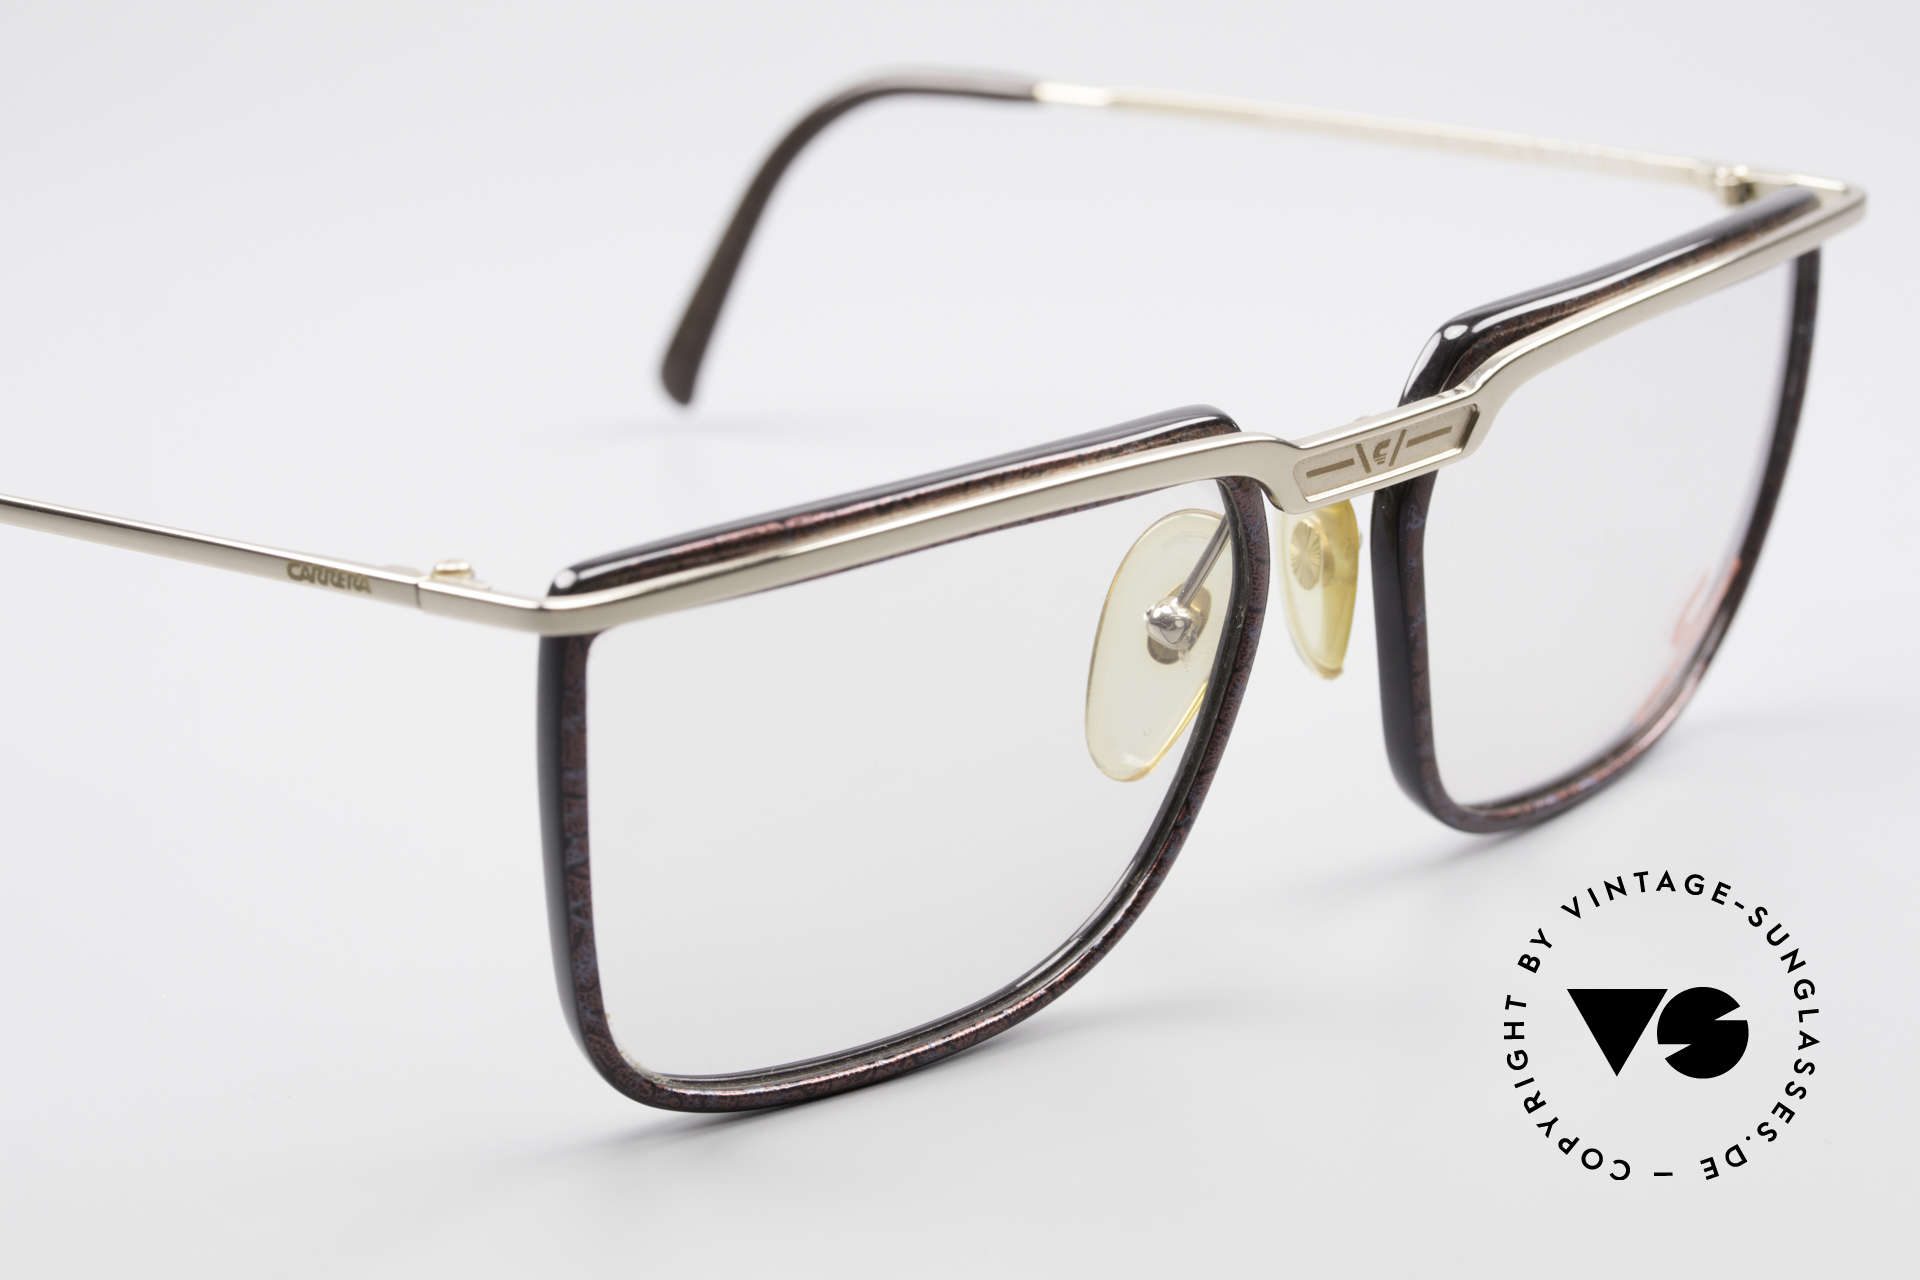 Carrera 5376 Square Vintage Carbon Frame, unworn model comes with a pouch by MOVADO, Made for Men